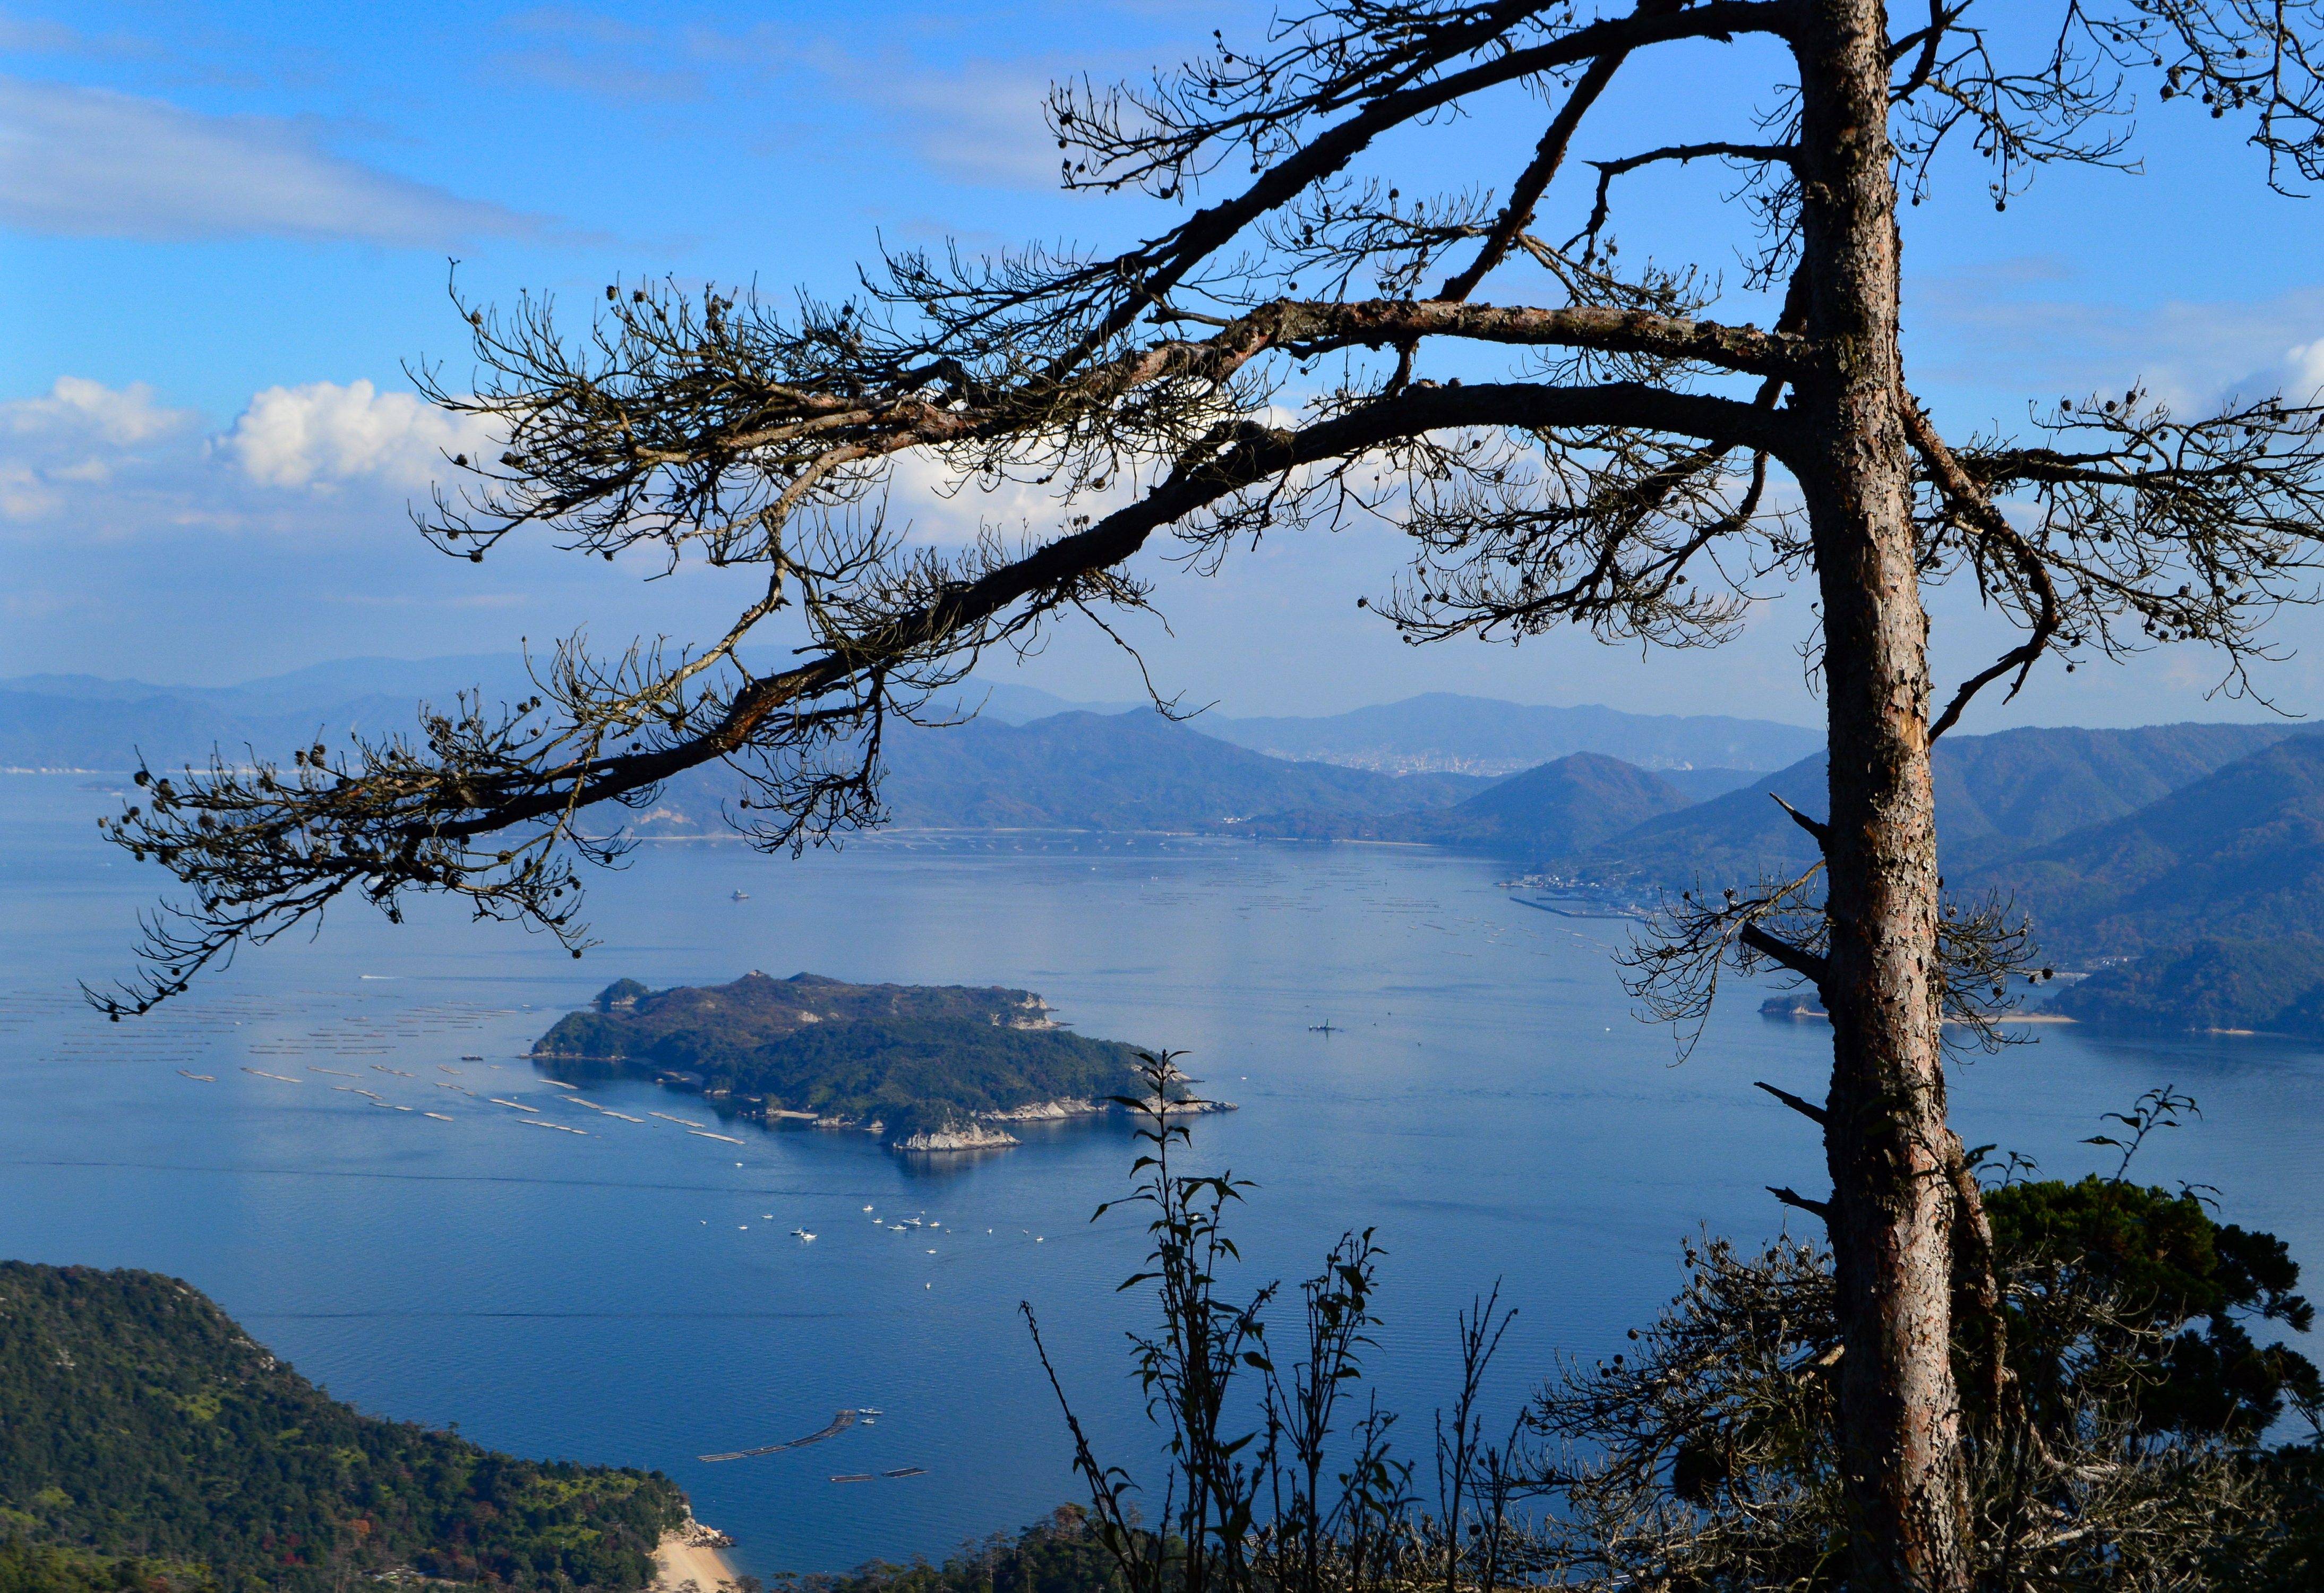 View from top of Miyajima Island